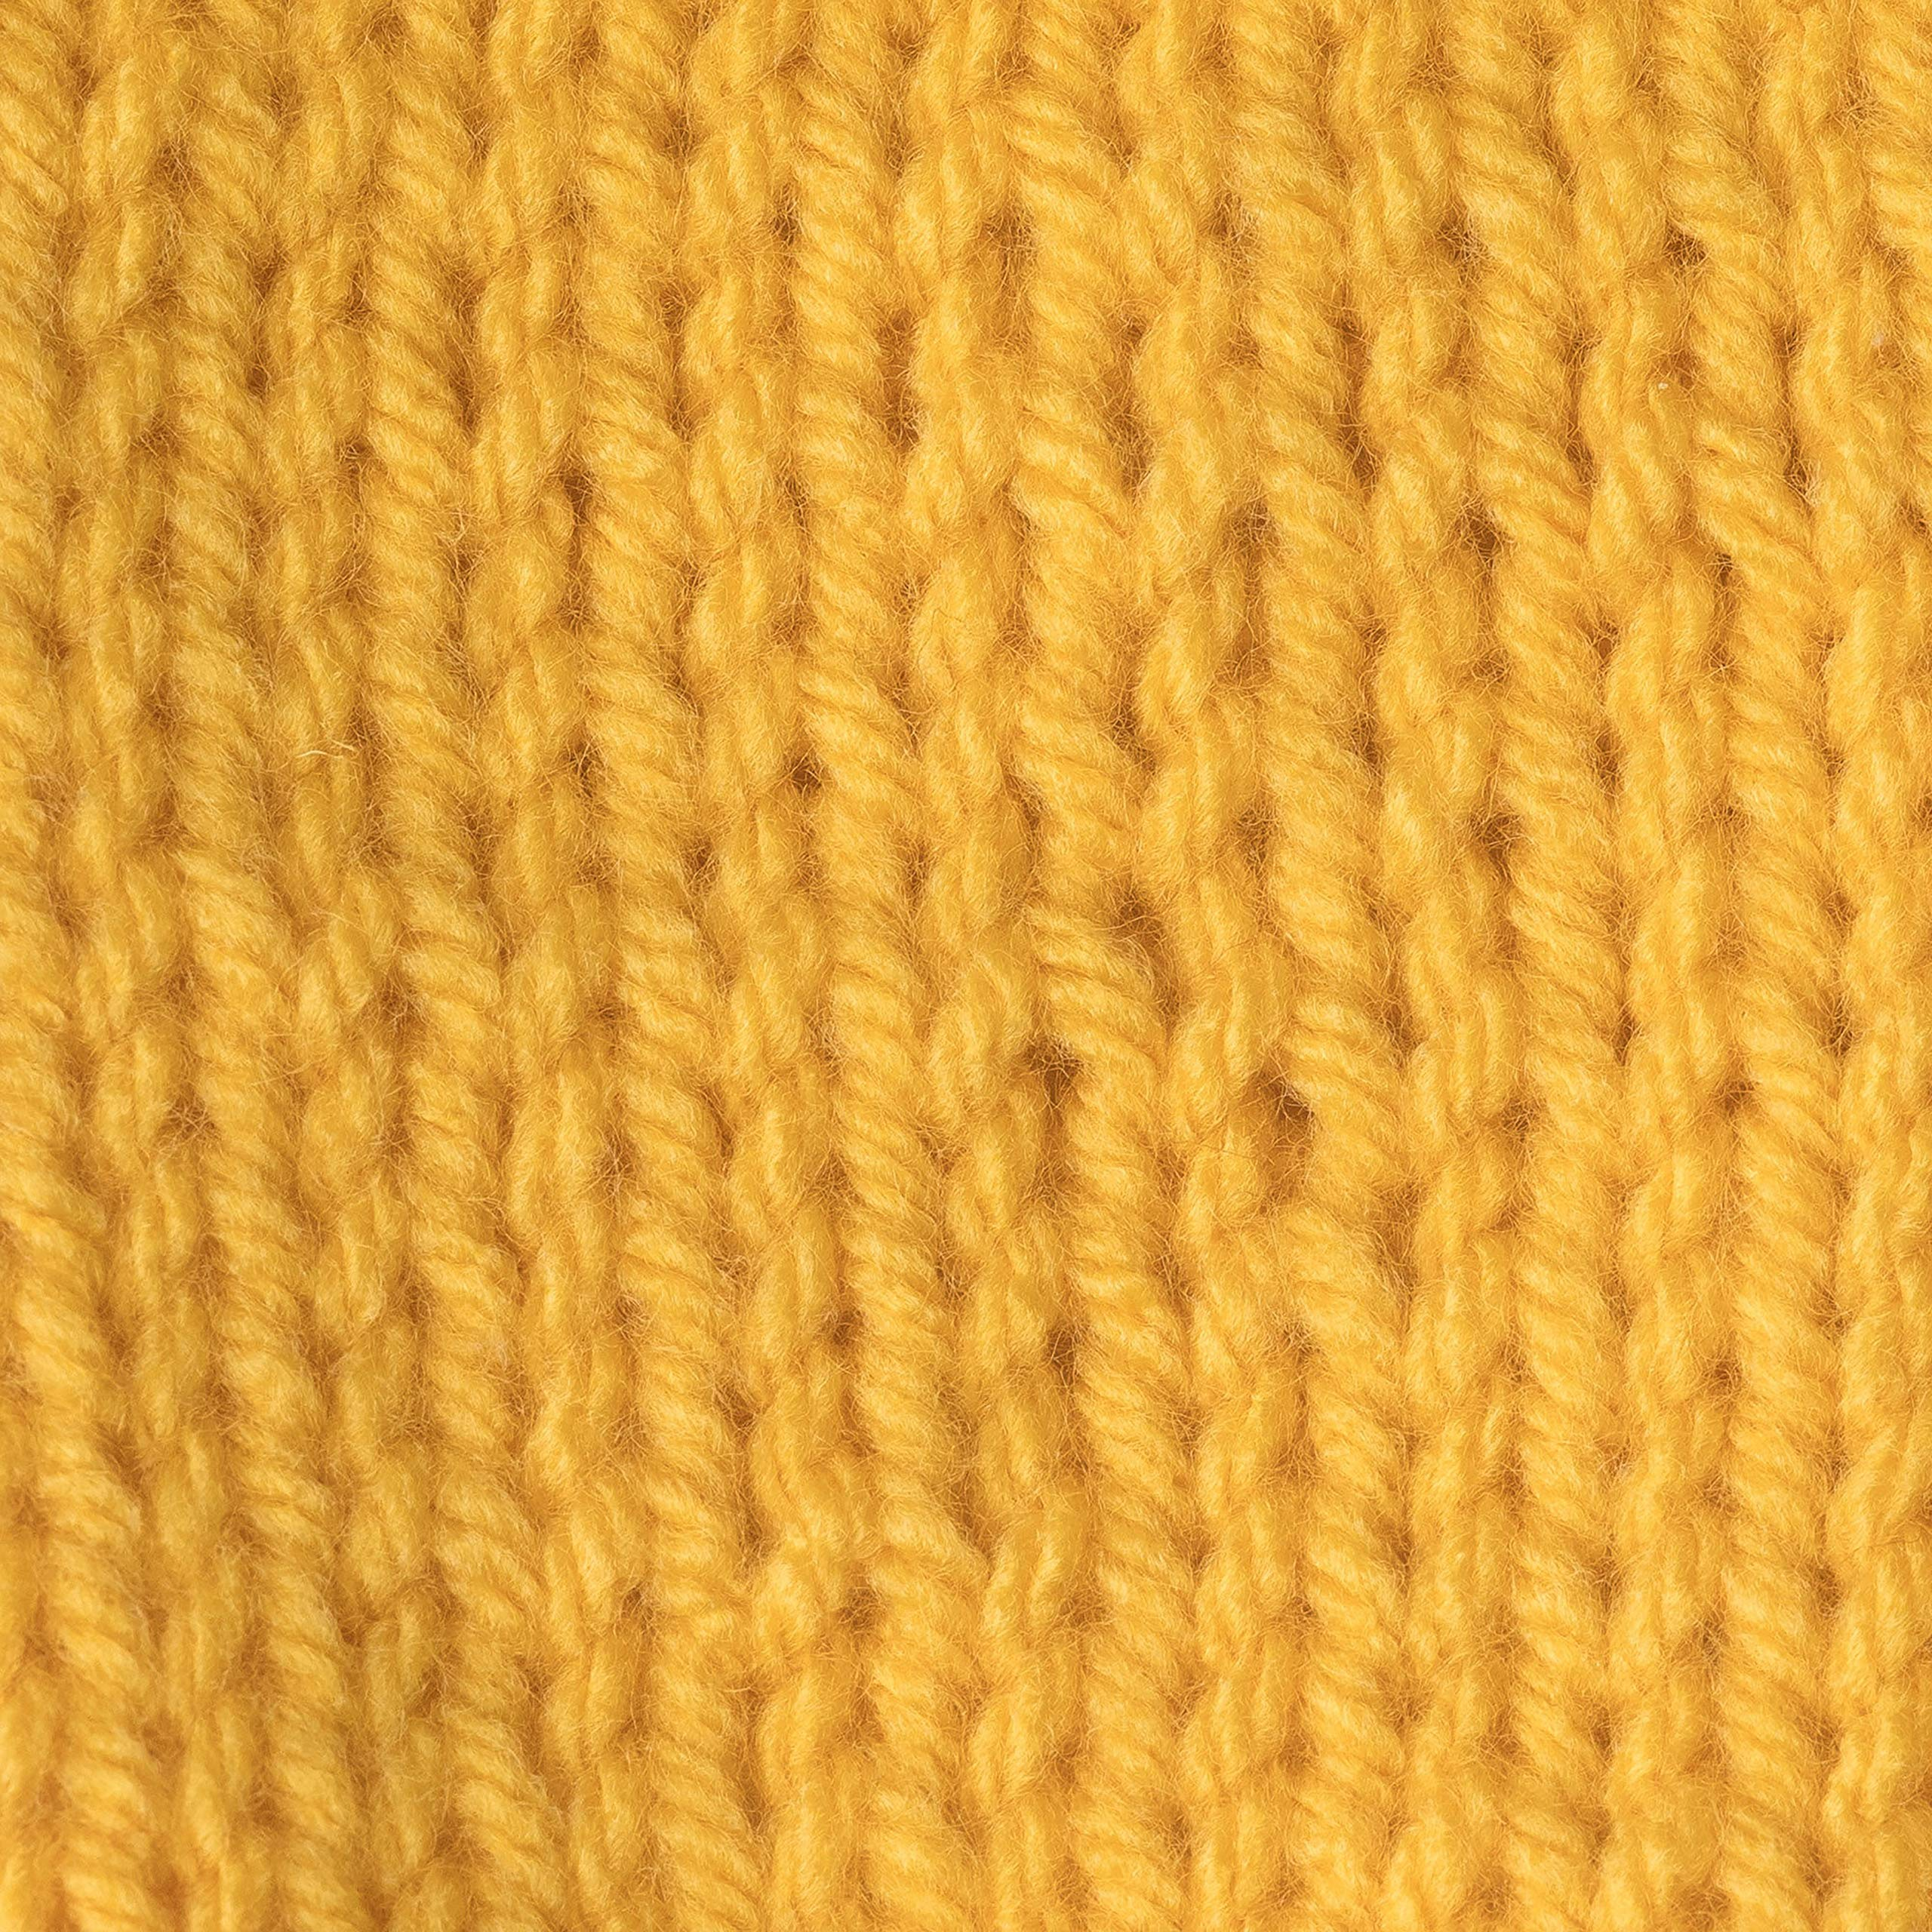 Caron 99607 One Pound Yarn-Sunflower, Multipack of 12, Pack by Caron (Image #6)